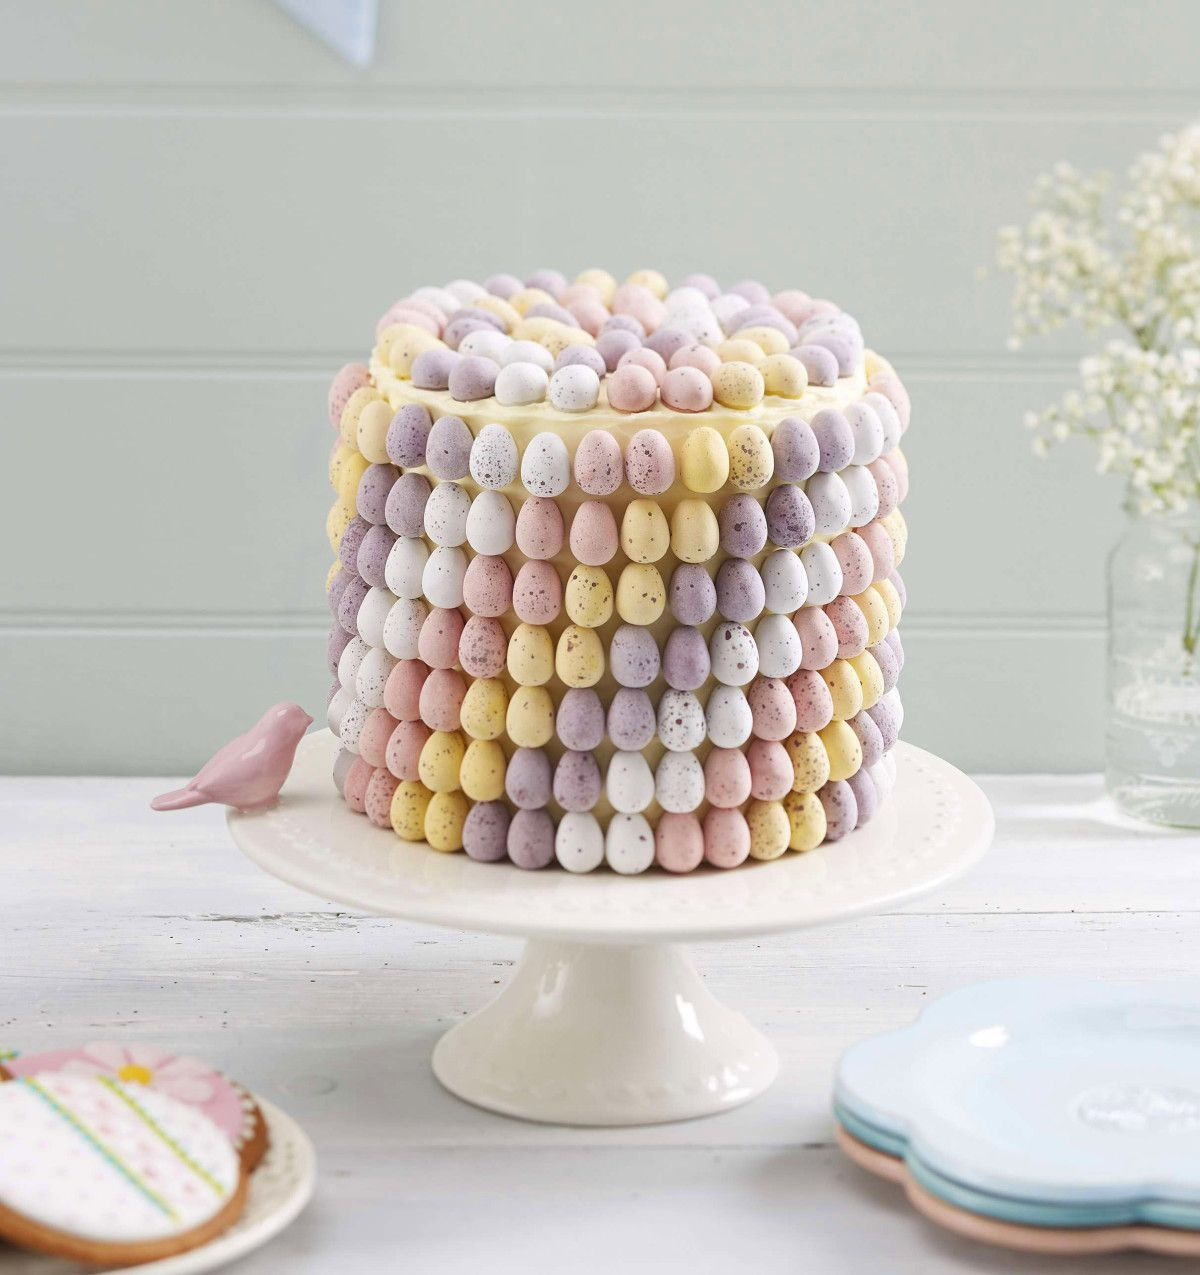 Easy but impressive Easter cake ideas Easy but impressive Easter cake ideas new foto